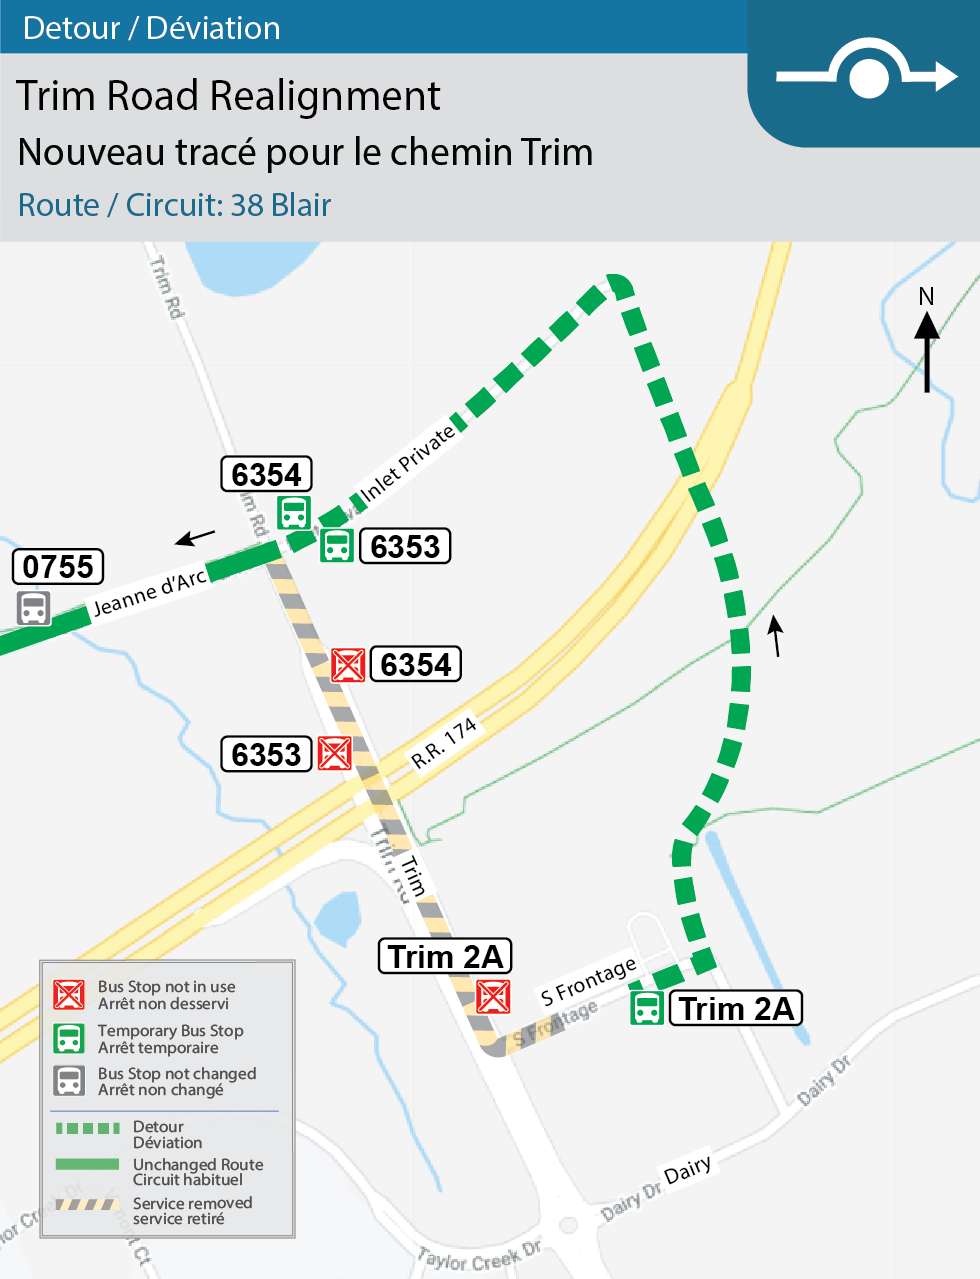 Map for Route 38 Blair, Trim Road Realignment and Trim Station Adjustments detour